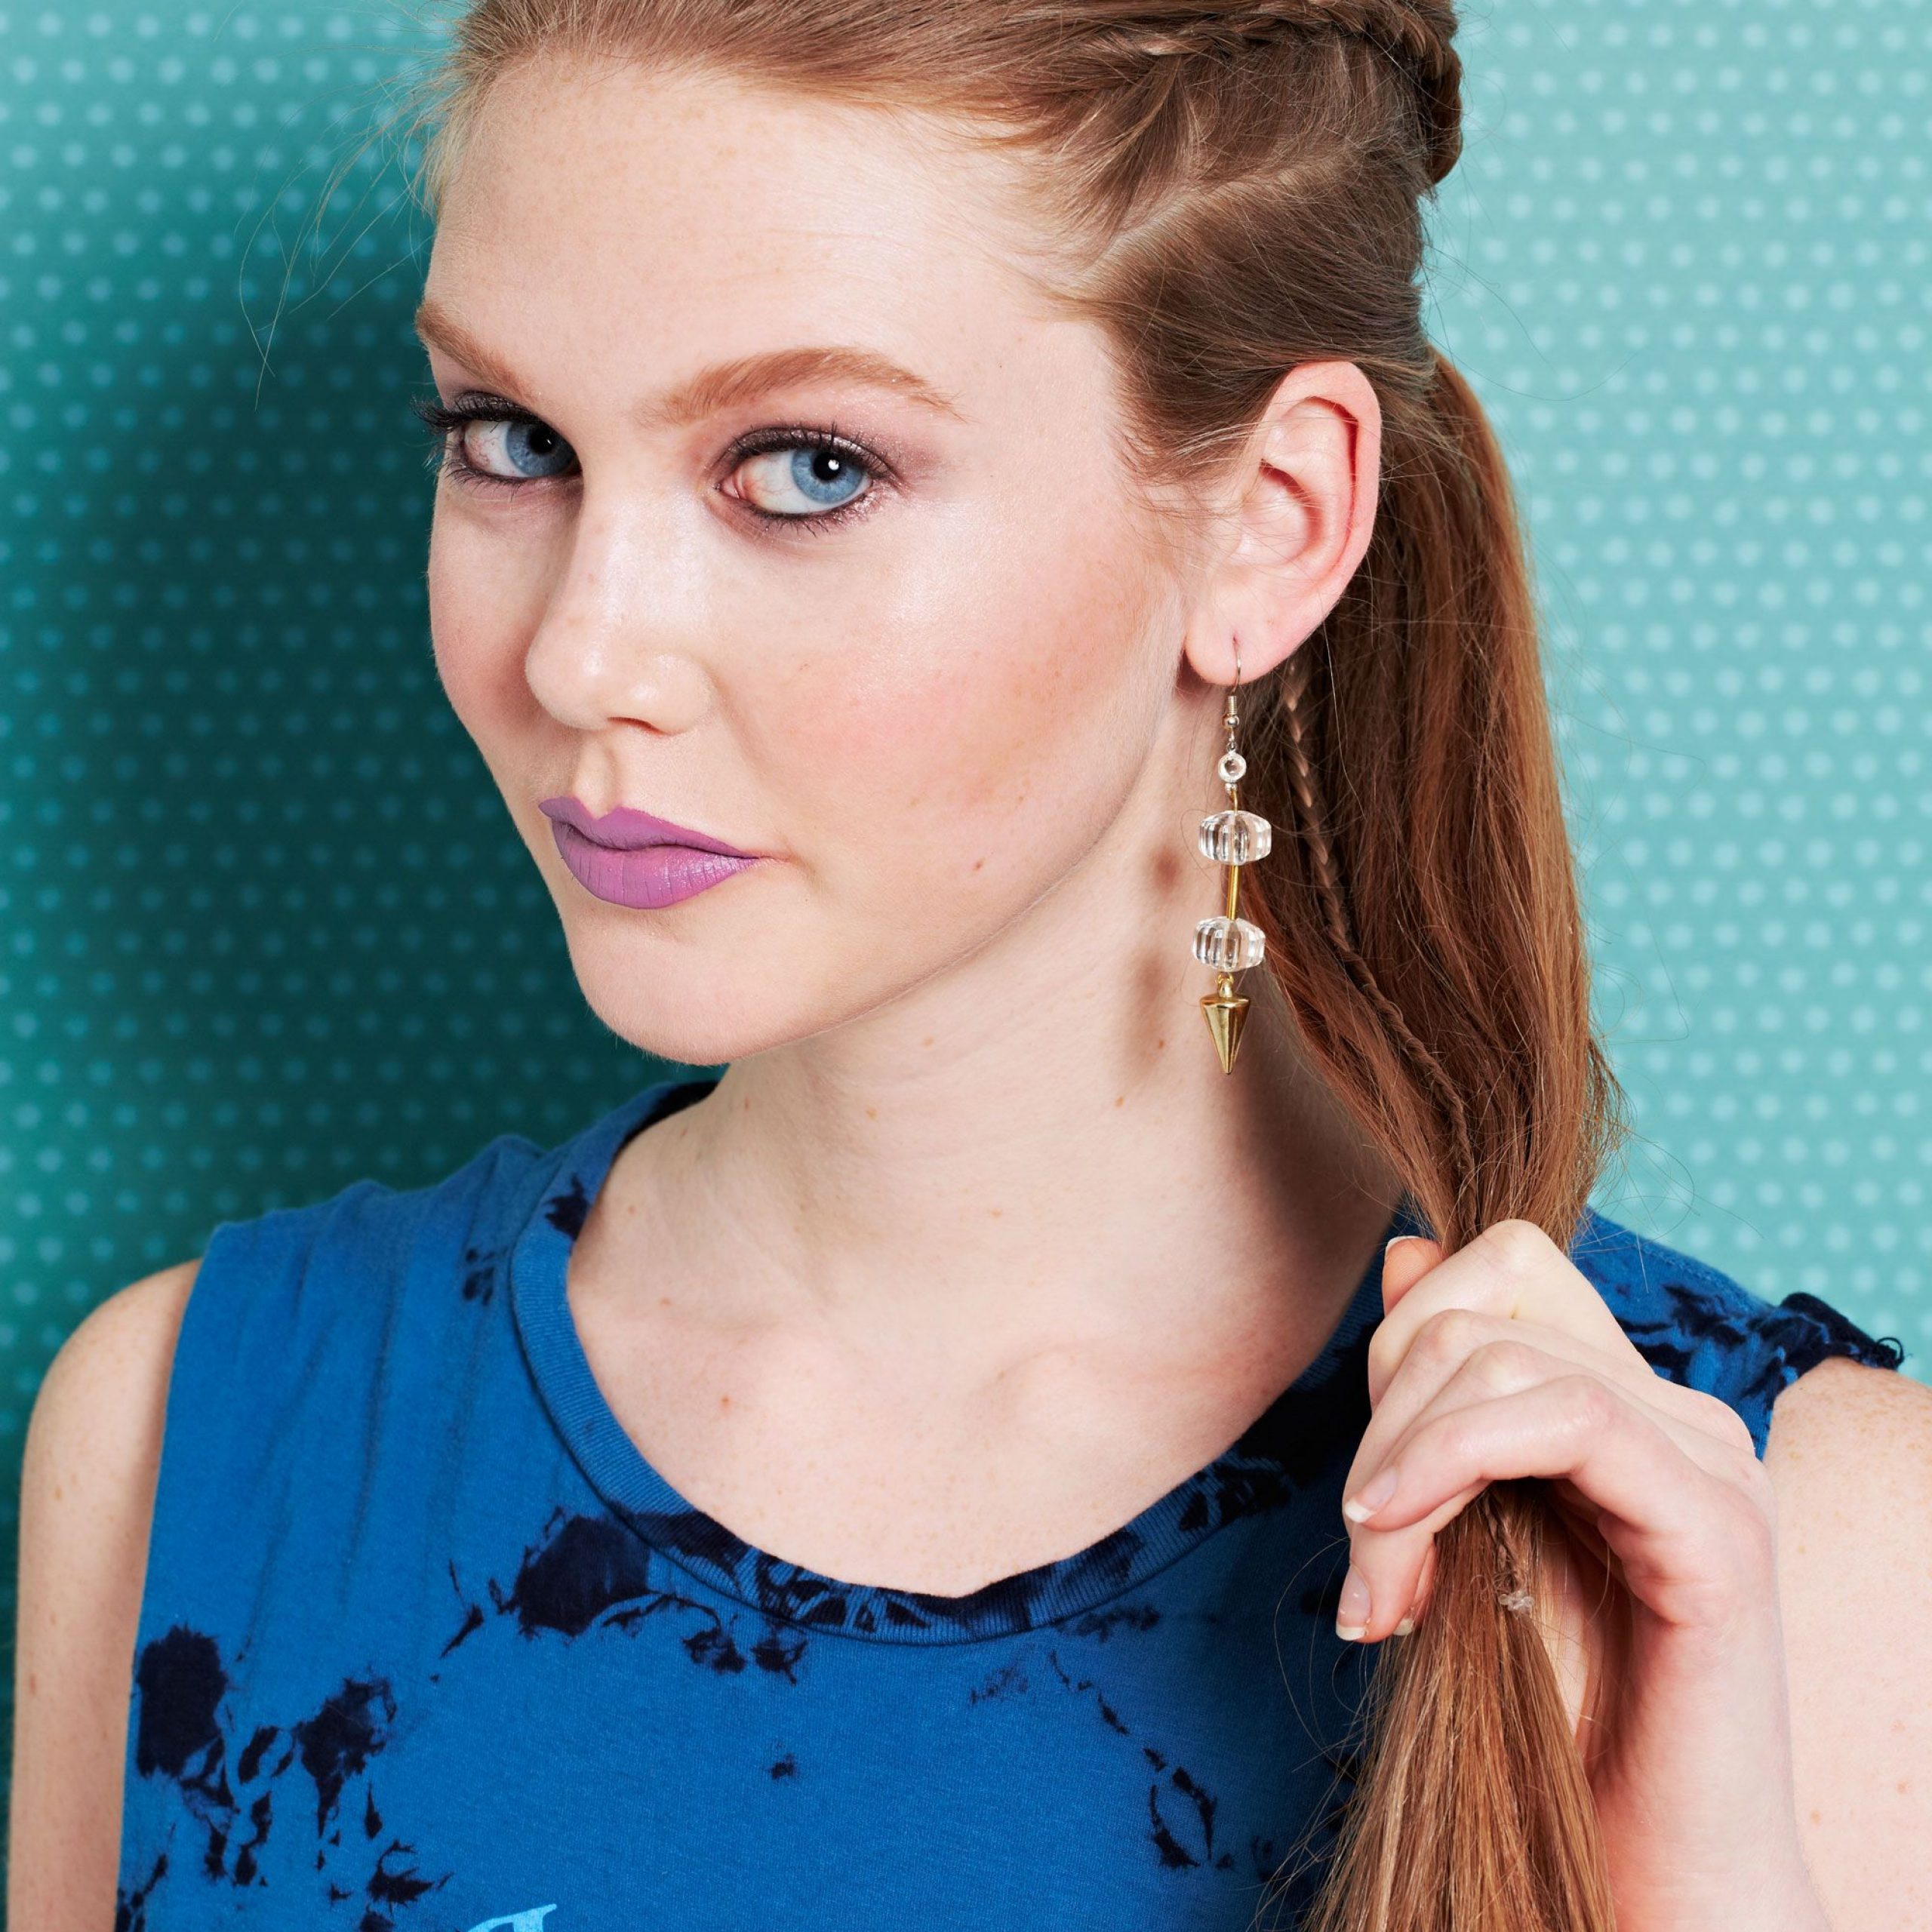 42 Braid Hairstyle Ideas For Teens – Best Braided Hairstyles Pertaining To Current Milkmaid Crown Braids Hairstyles (View 15 of 20)